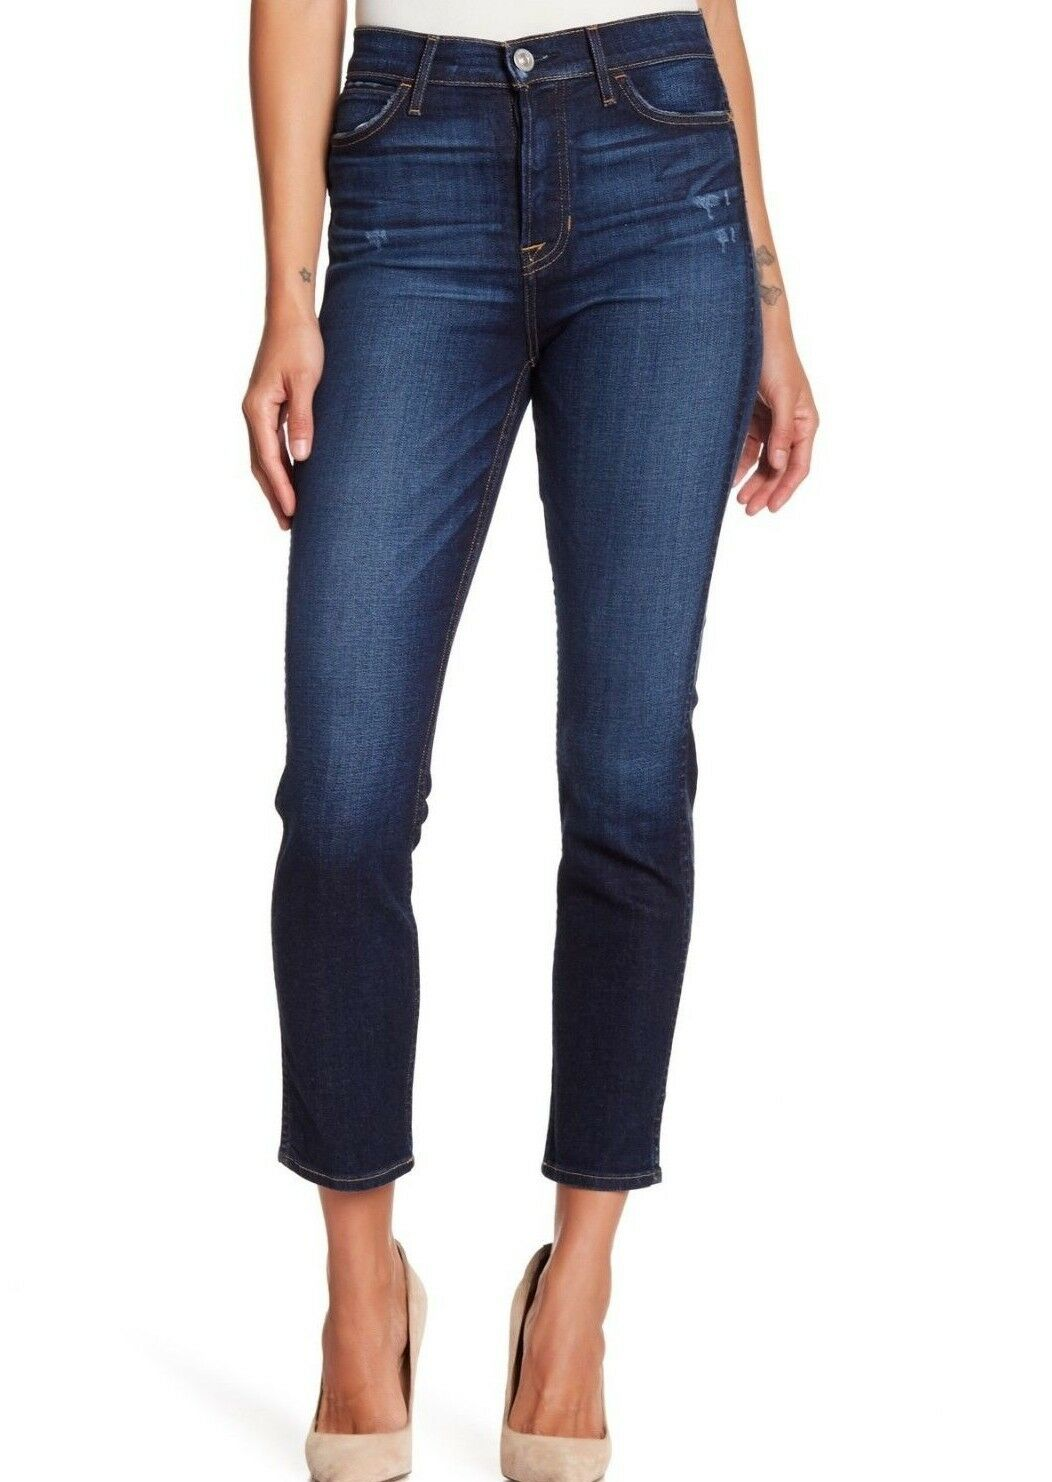 215 NWT HUDSON Sz25 HOLLY ANKLE HIGH RISE SKINNY STRETCH JEANS CORRUPT blueE